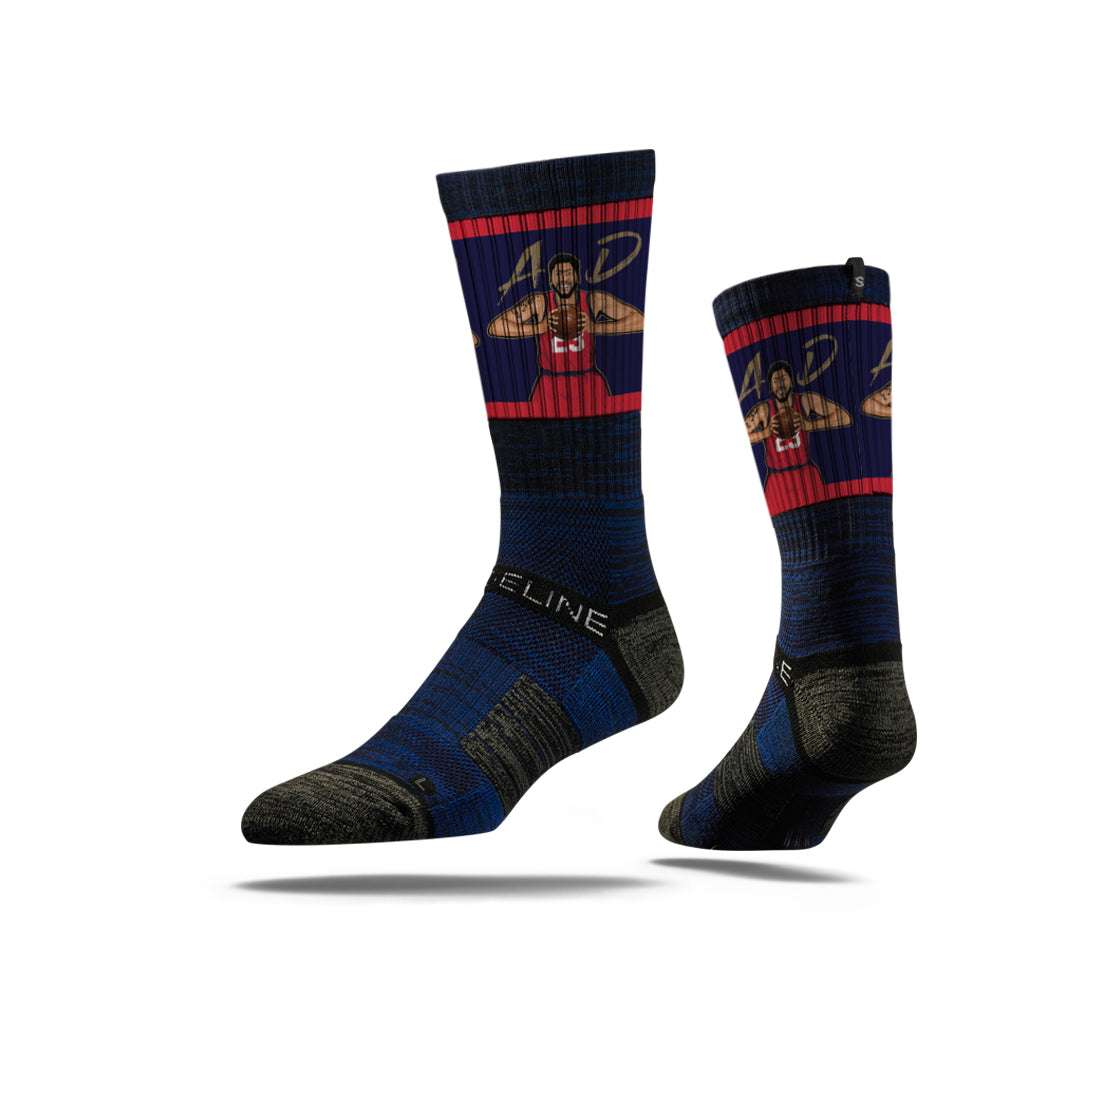 Anthony Davis Rebound Navy Crew Socks